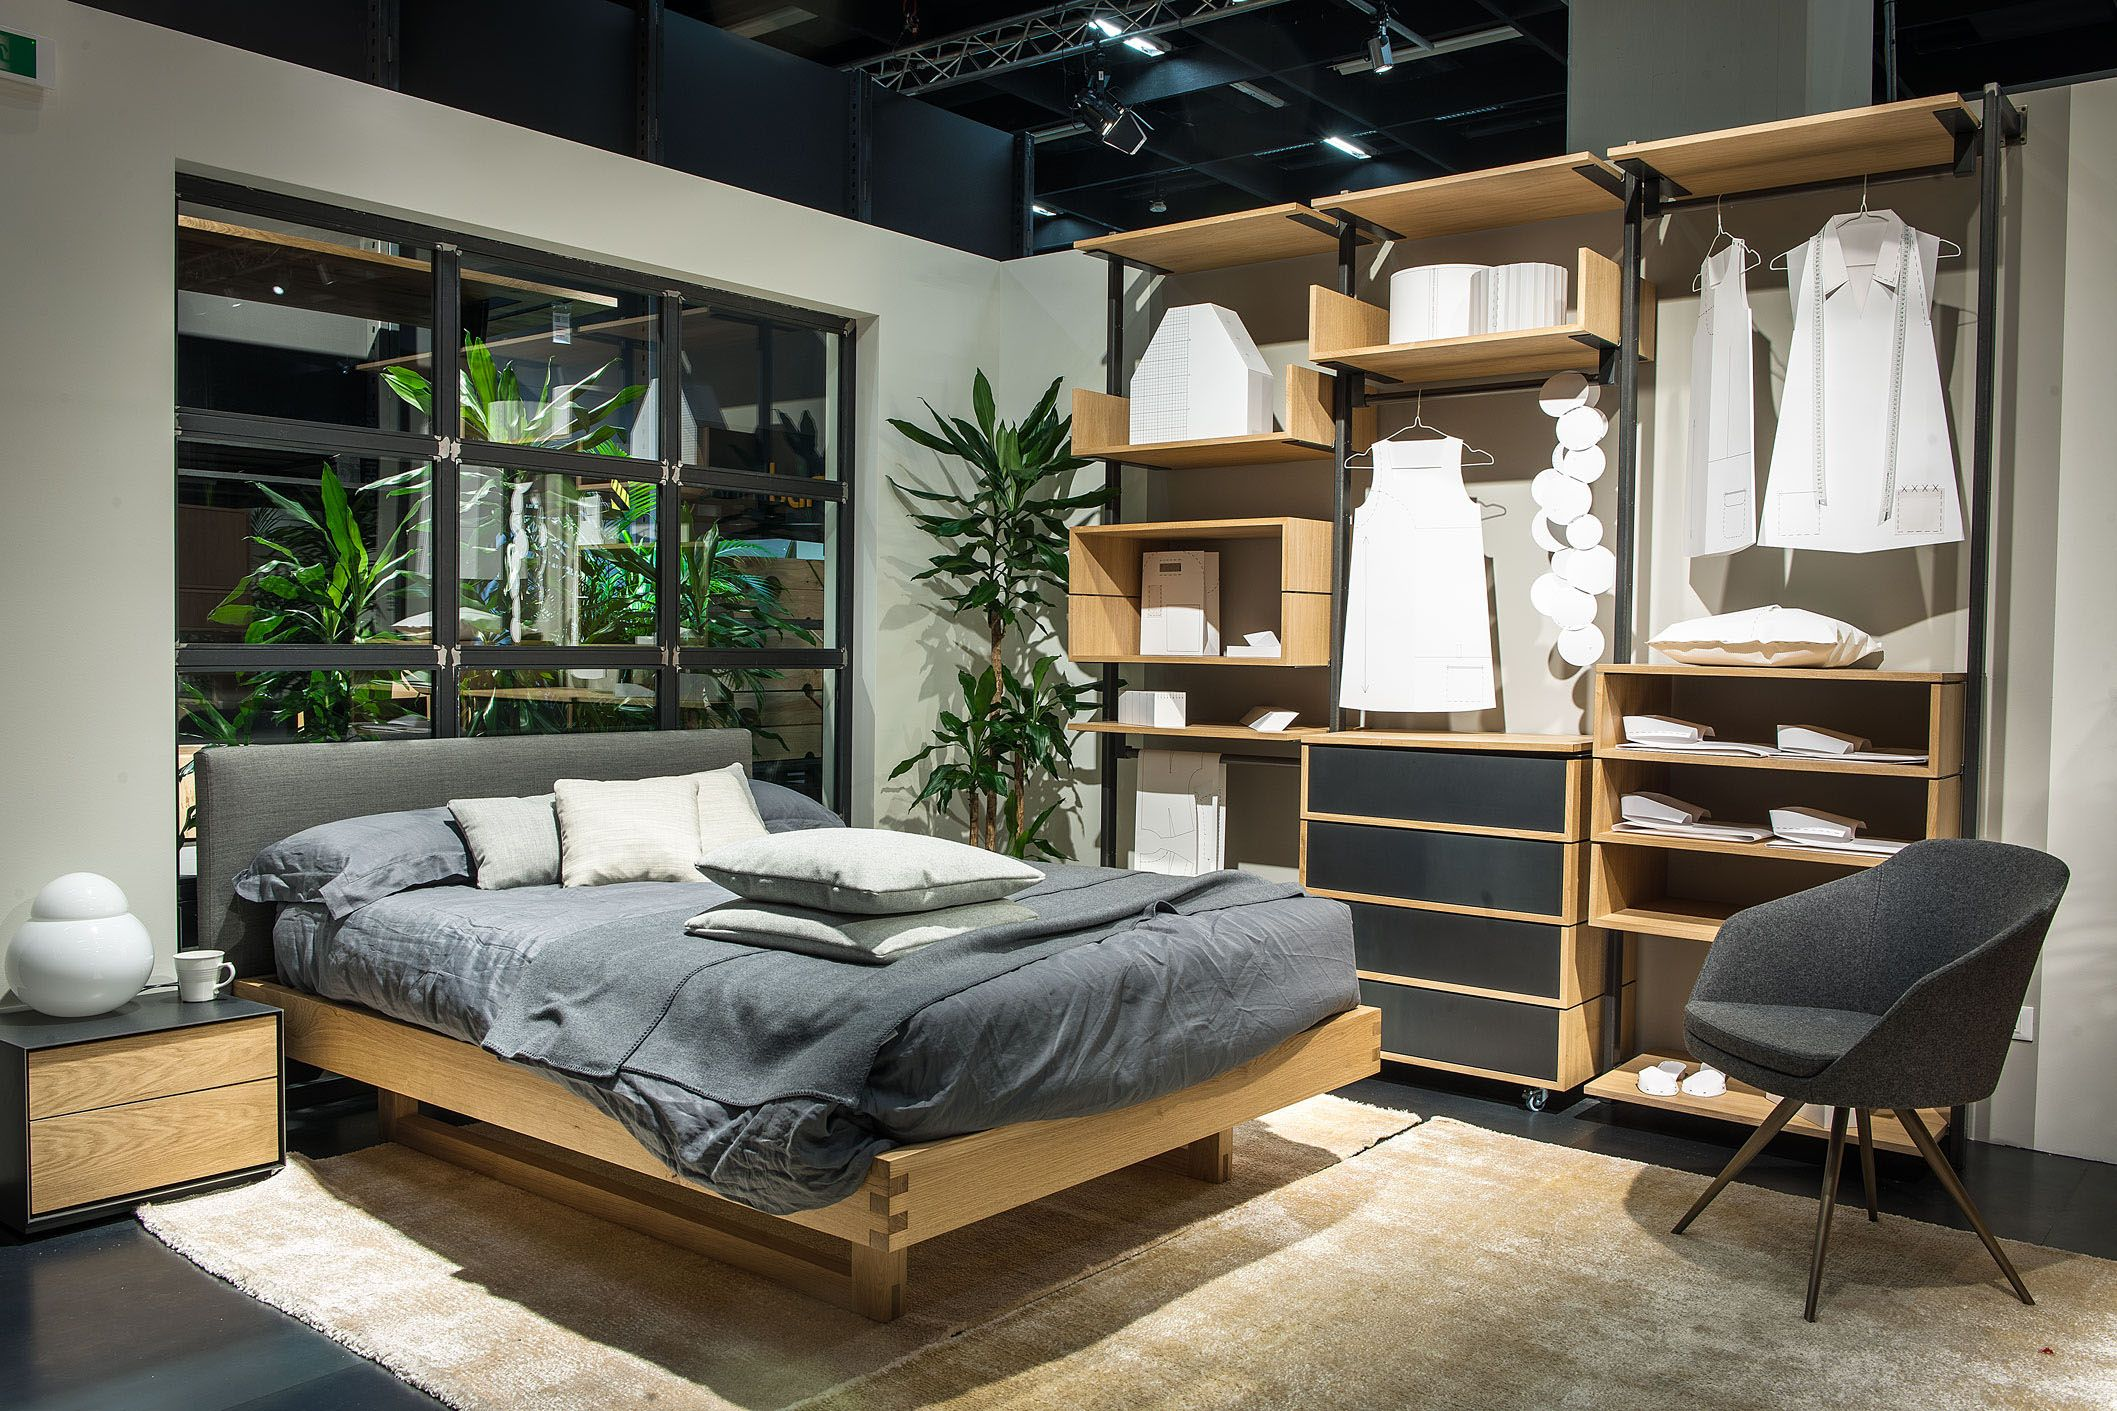 Pin by riva industria mobili on imm cologne 2016 for Industria mobili